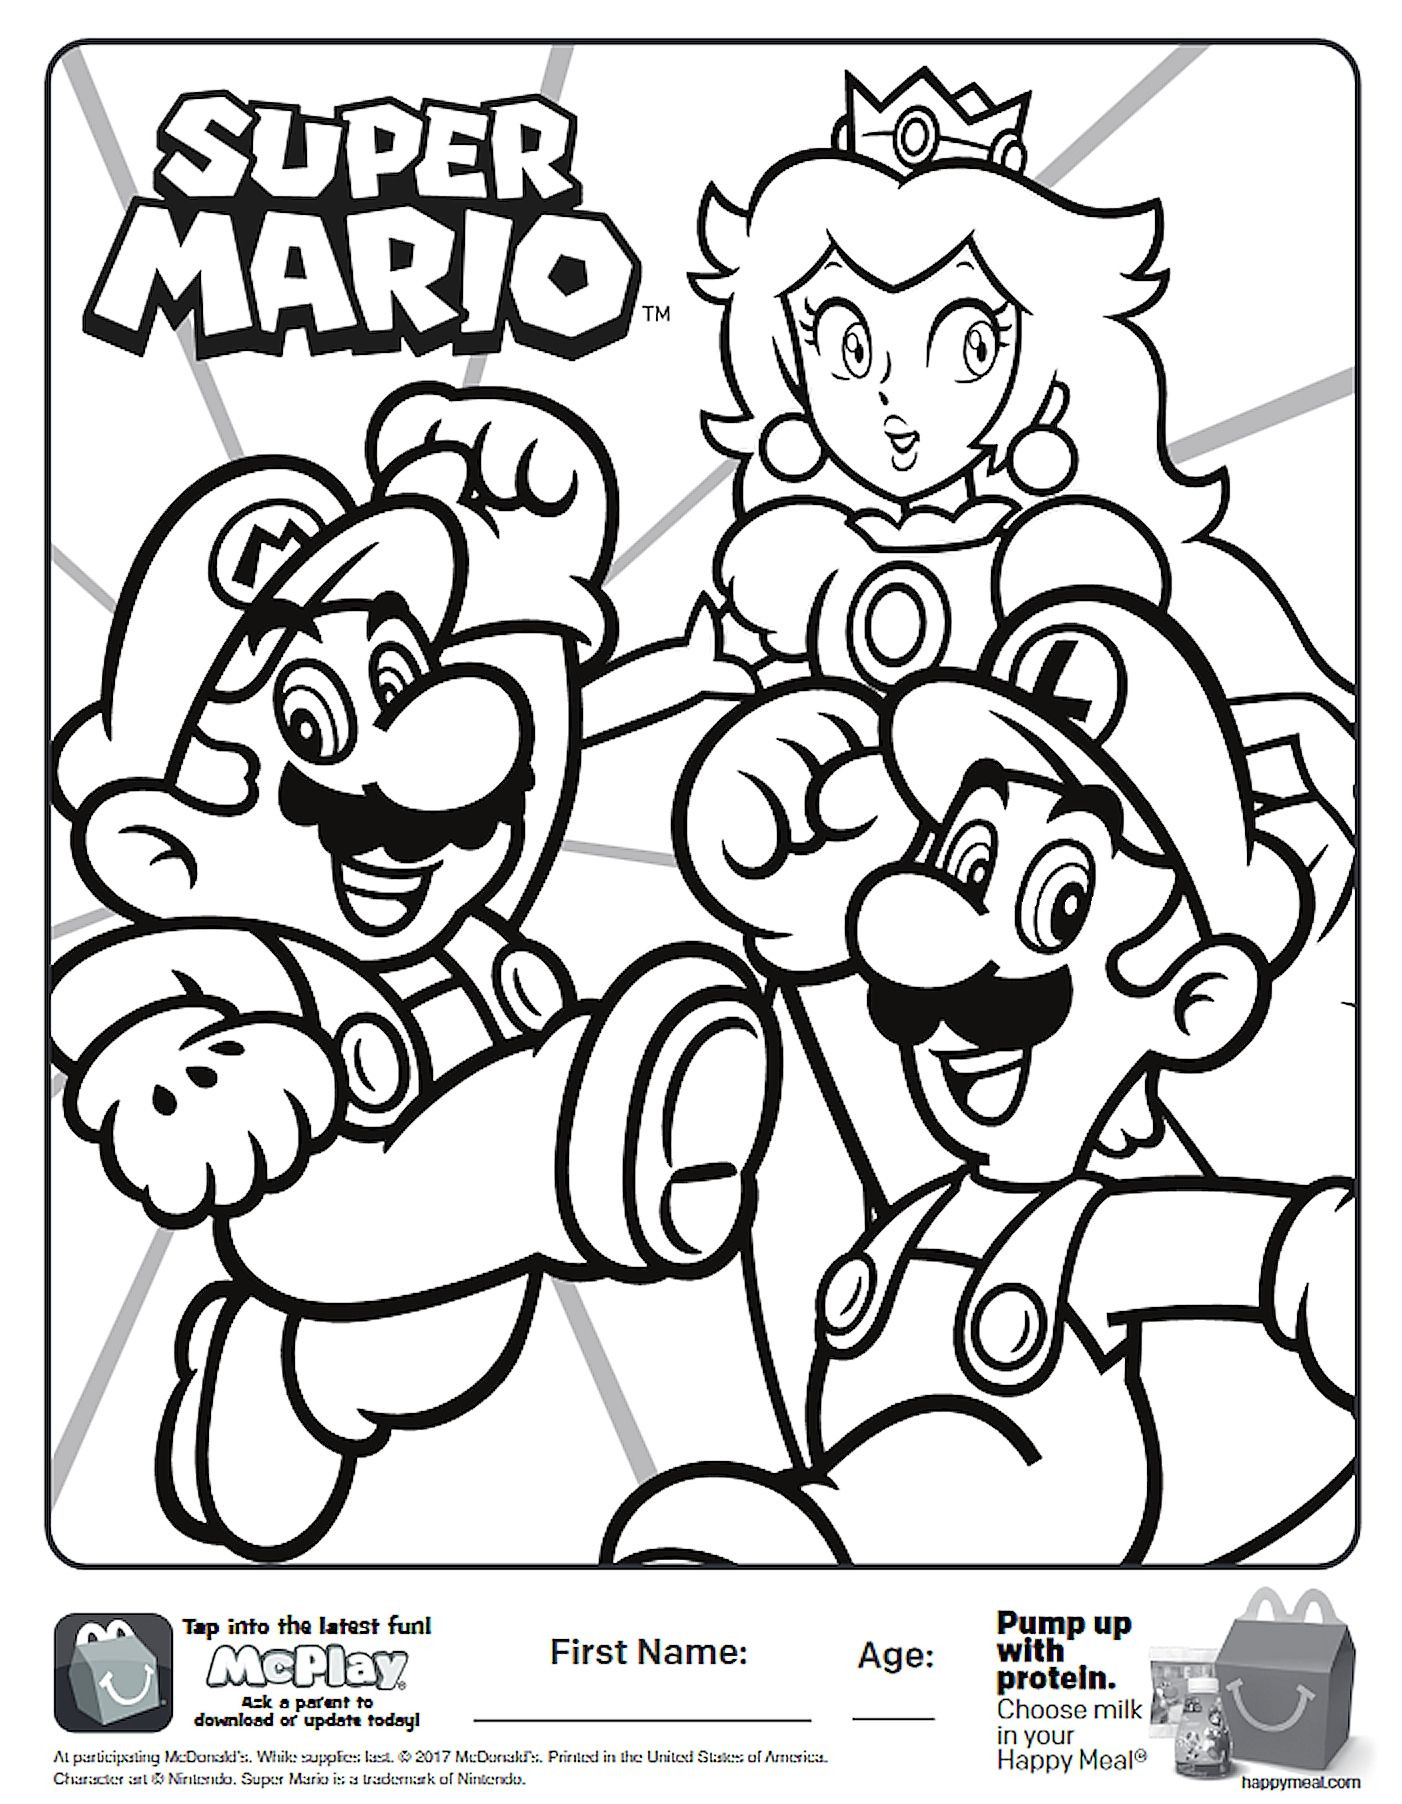 Super Mario Coloring Book  Here is the Happy Meal Super Mario Coloring Page